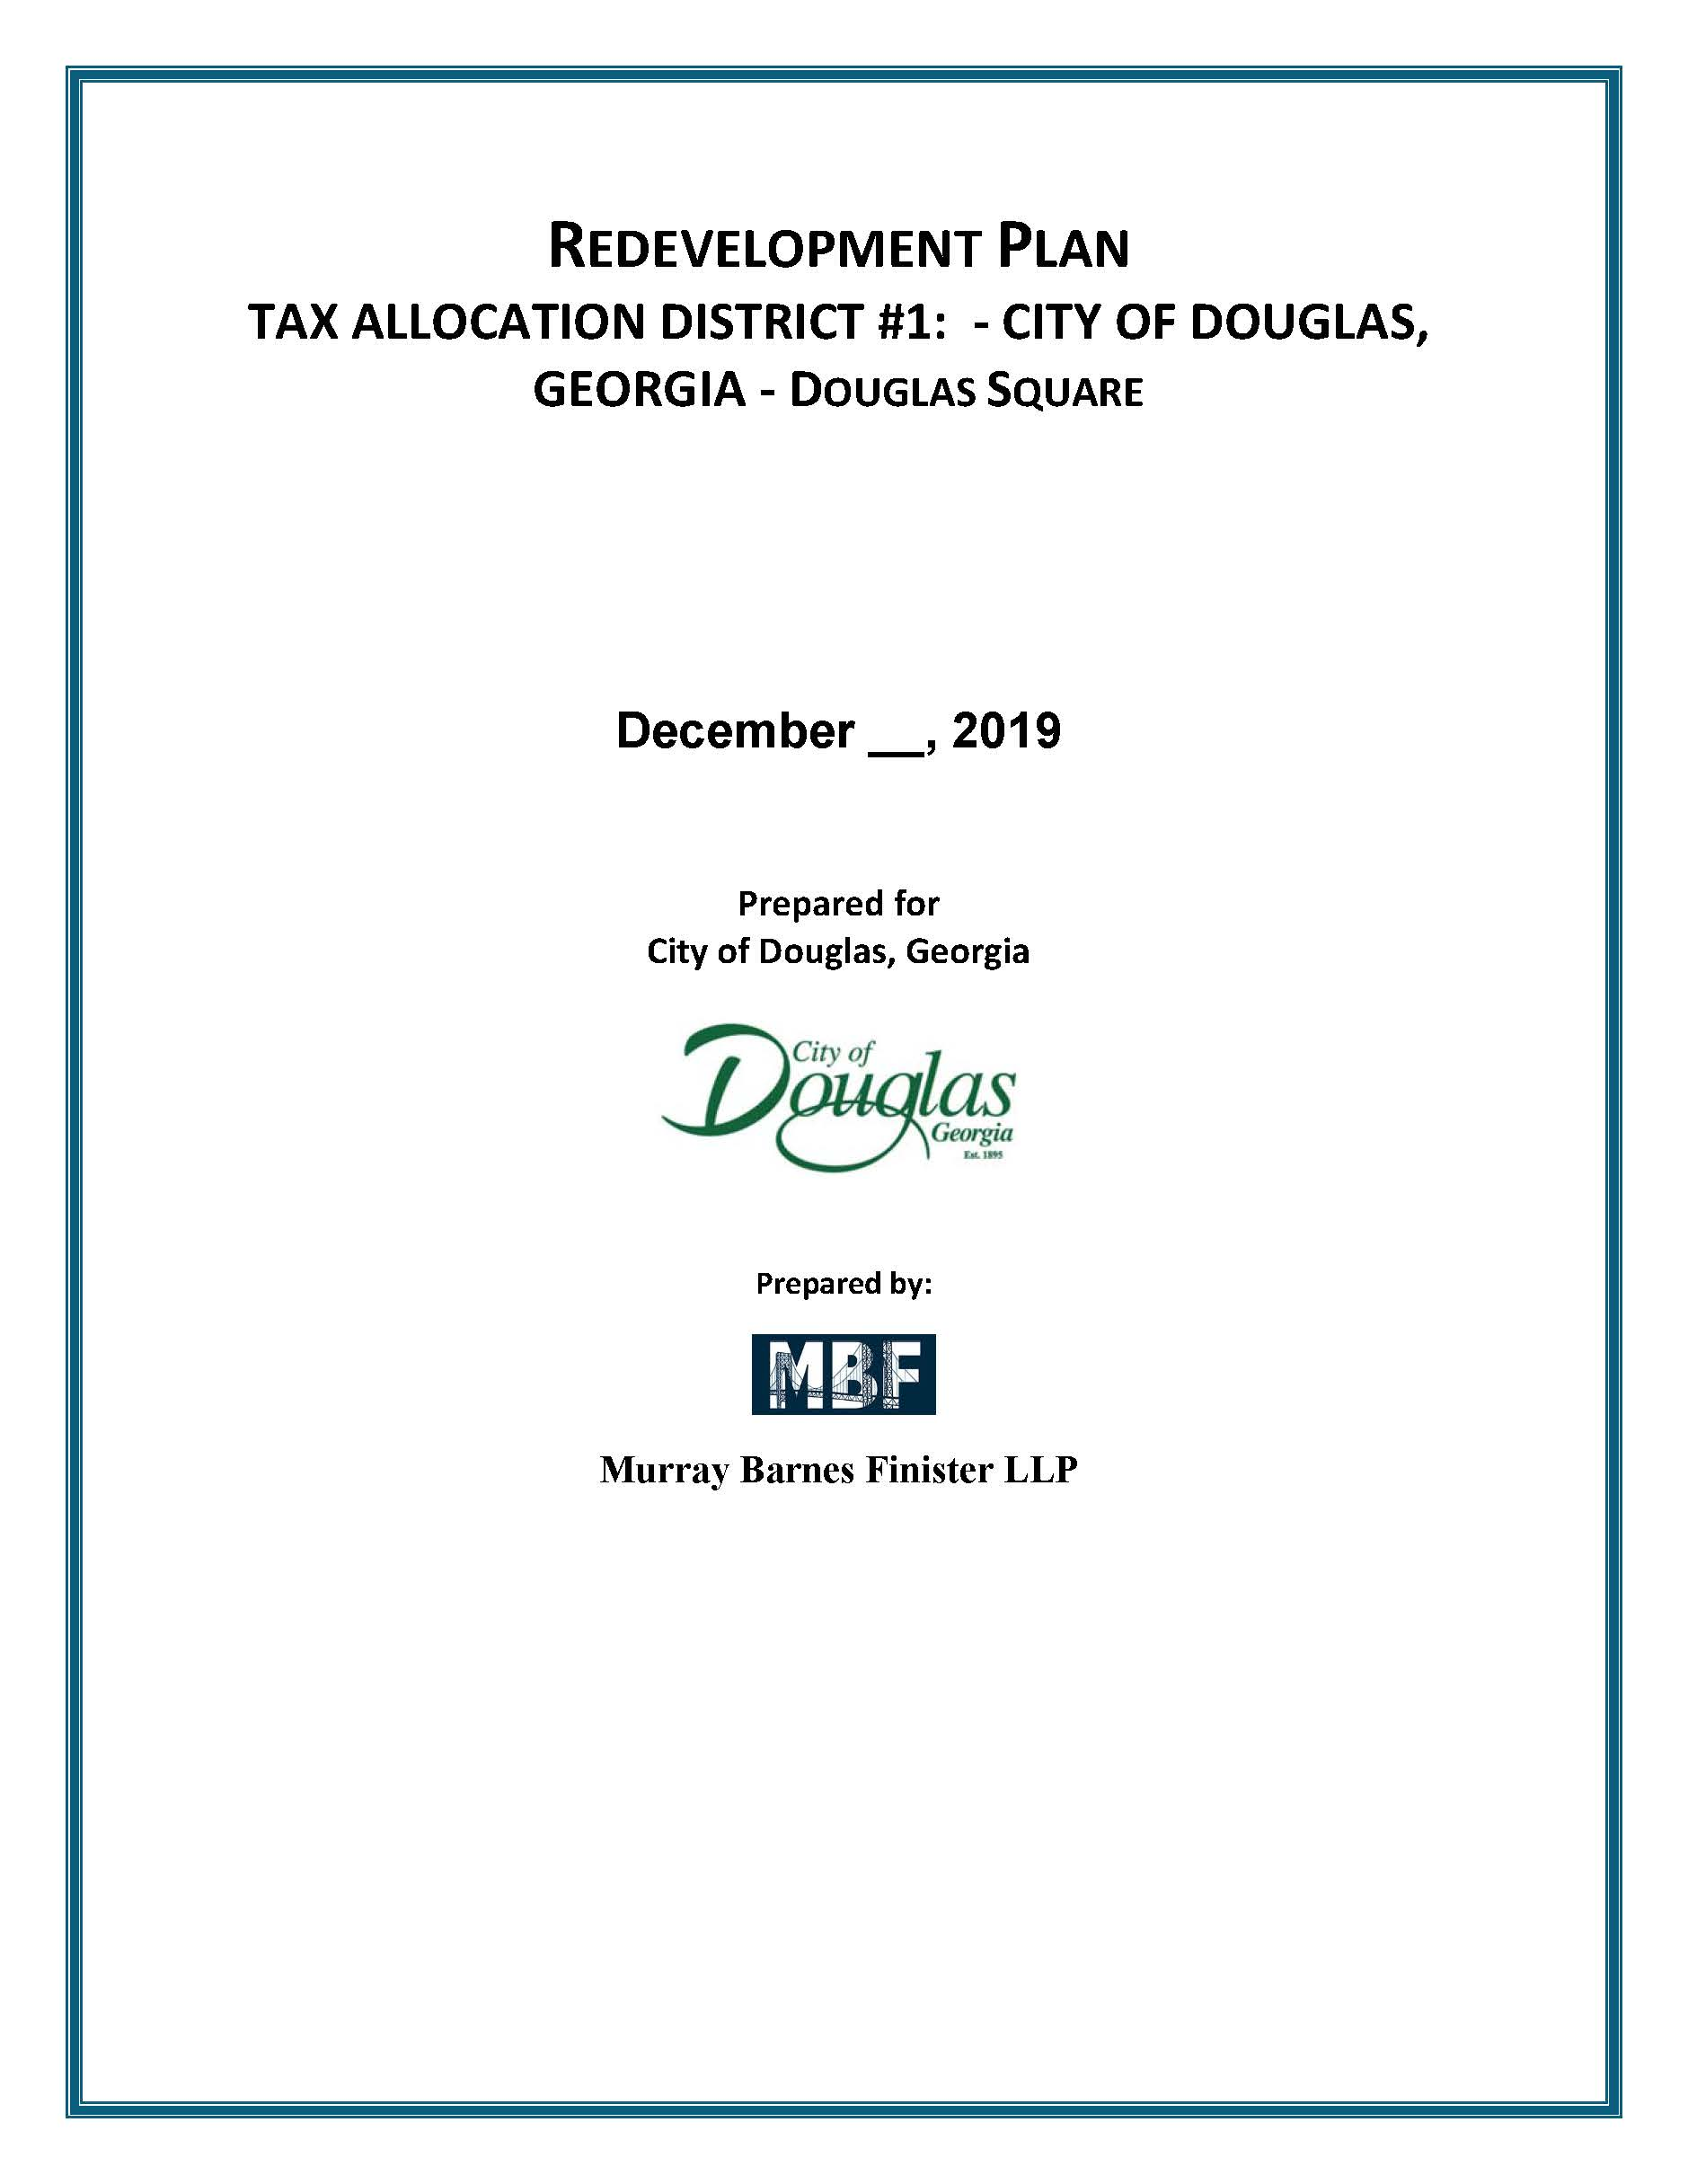 Redevelopment Plan City of Douglas 2019